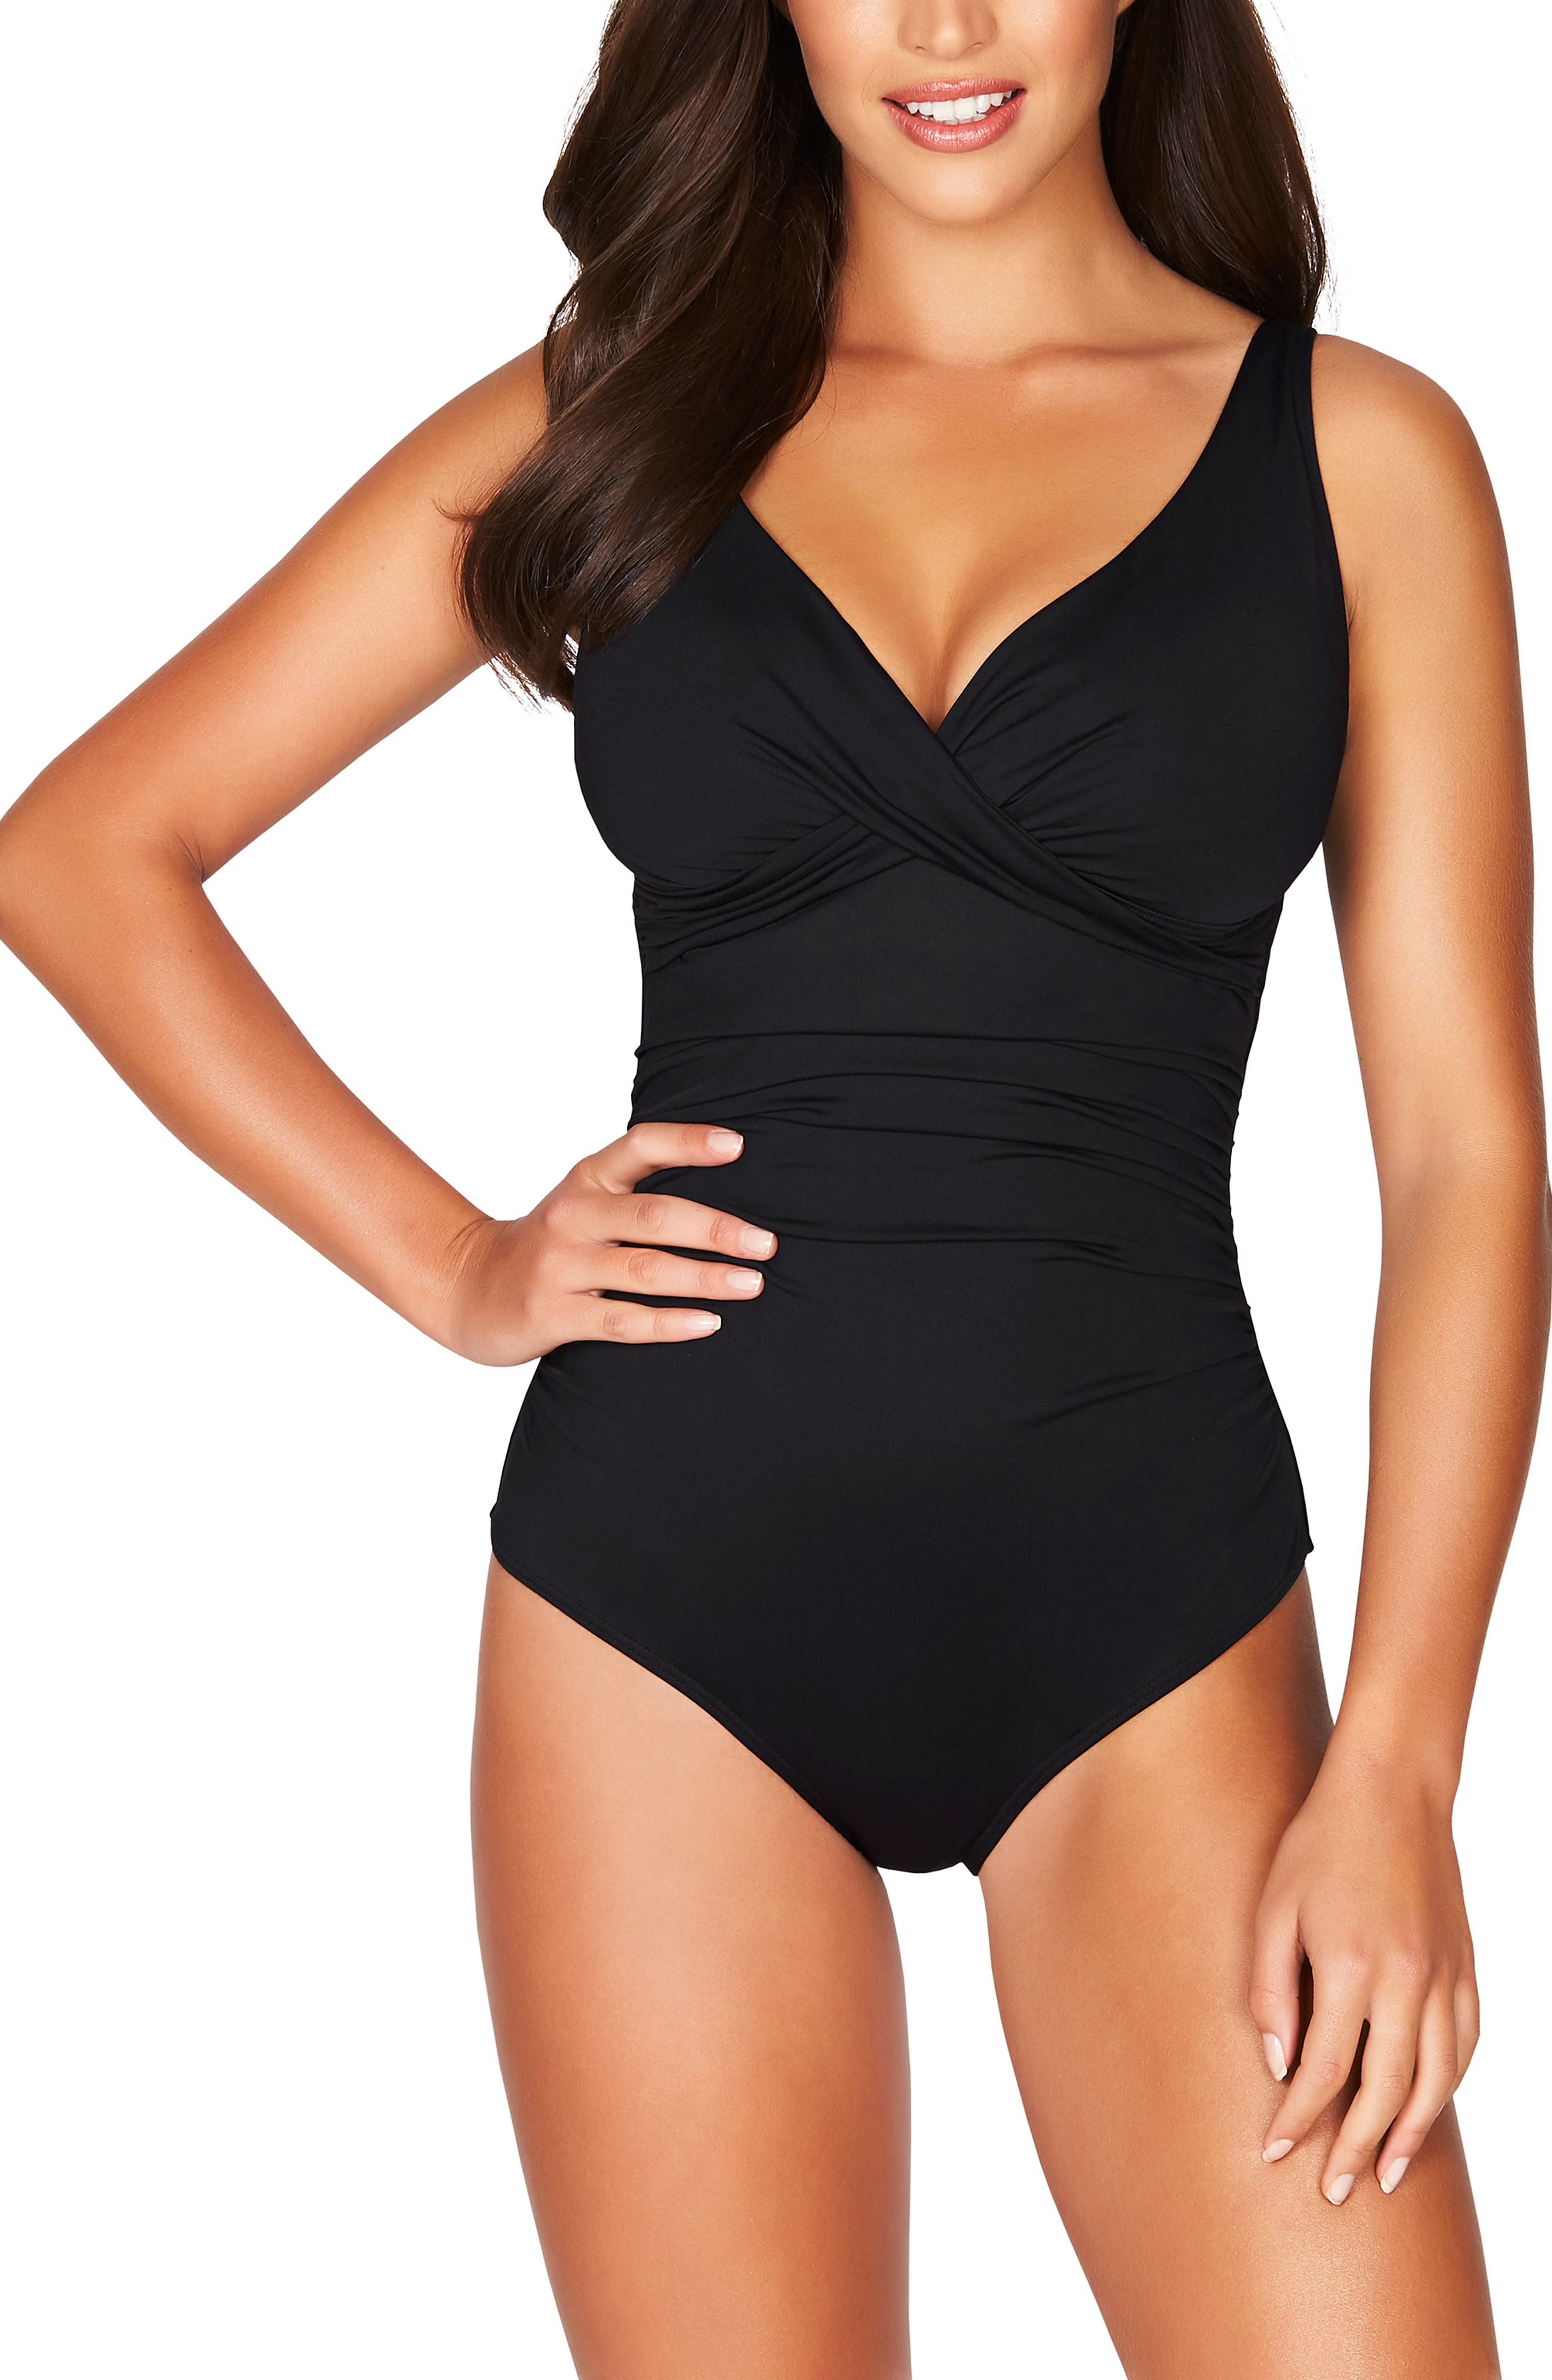 Sea Level Cross Front One-Piece Swimsuit, Black